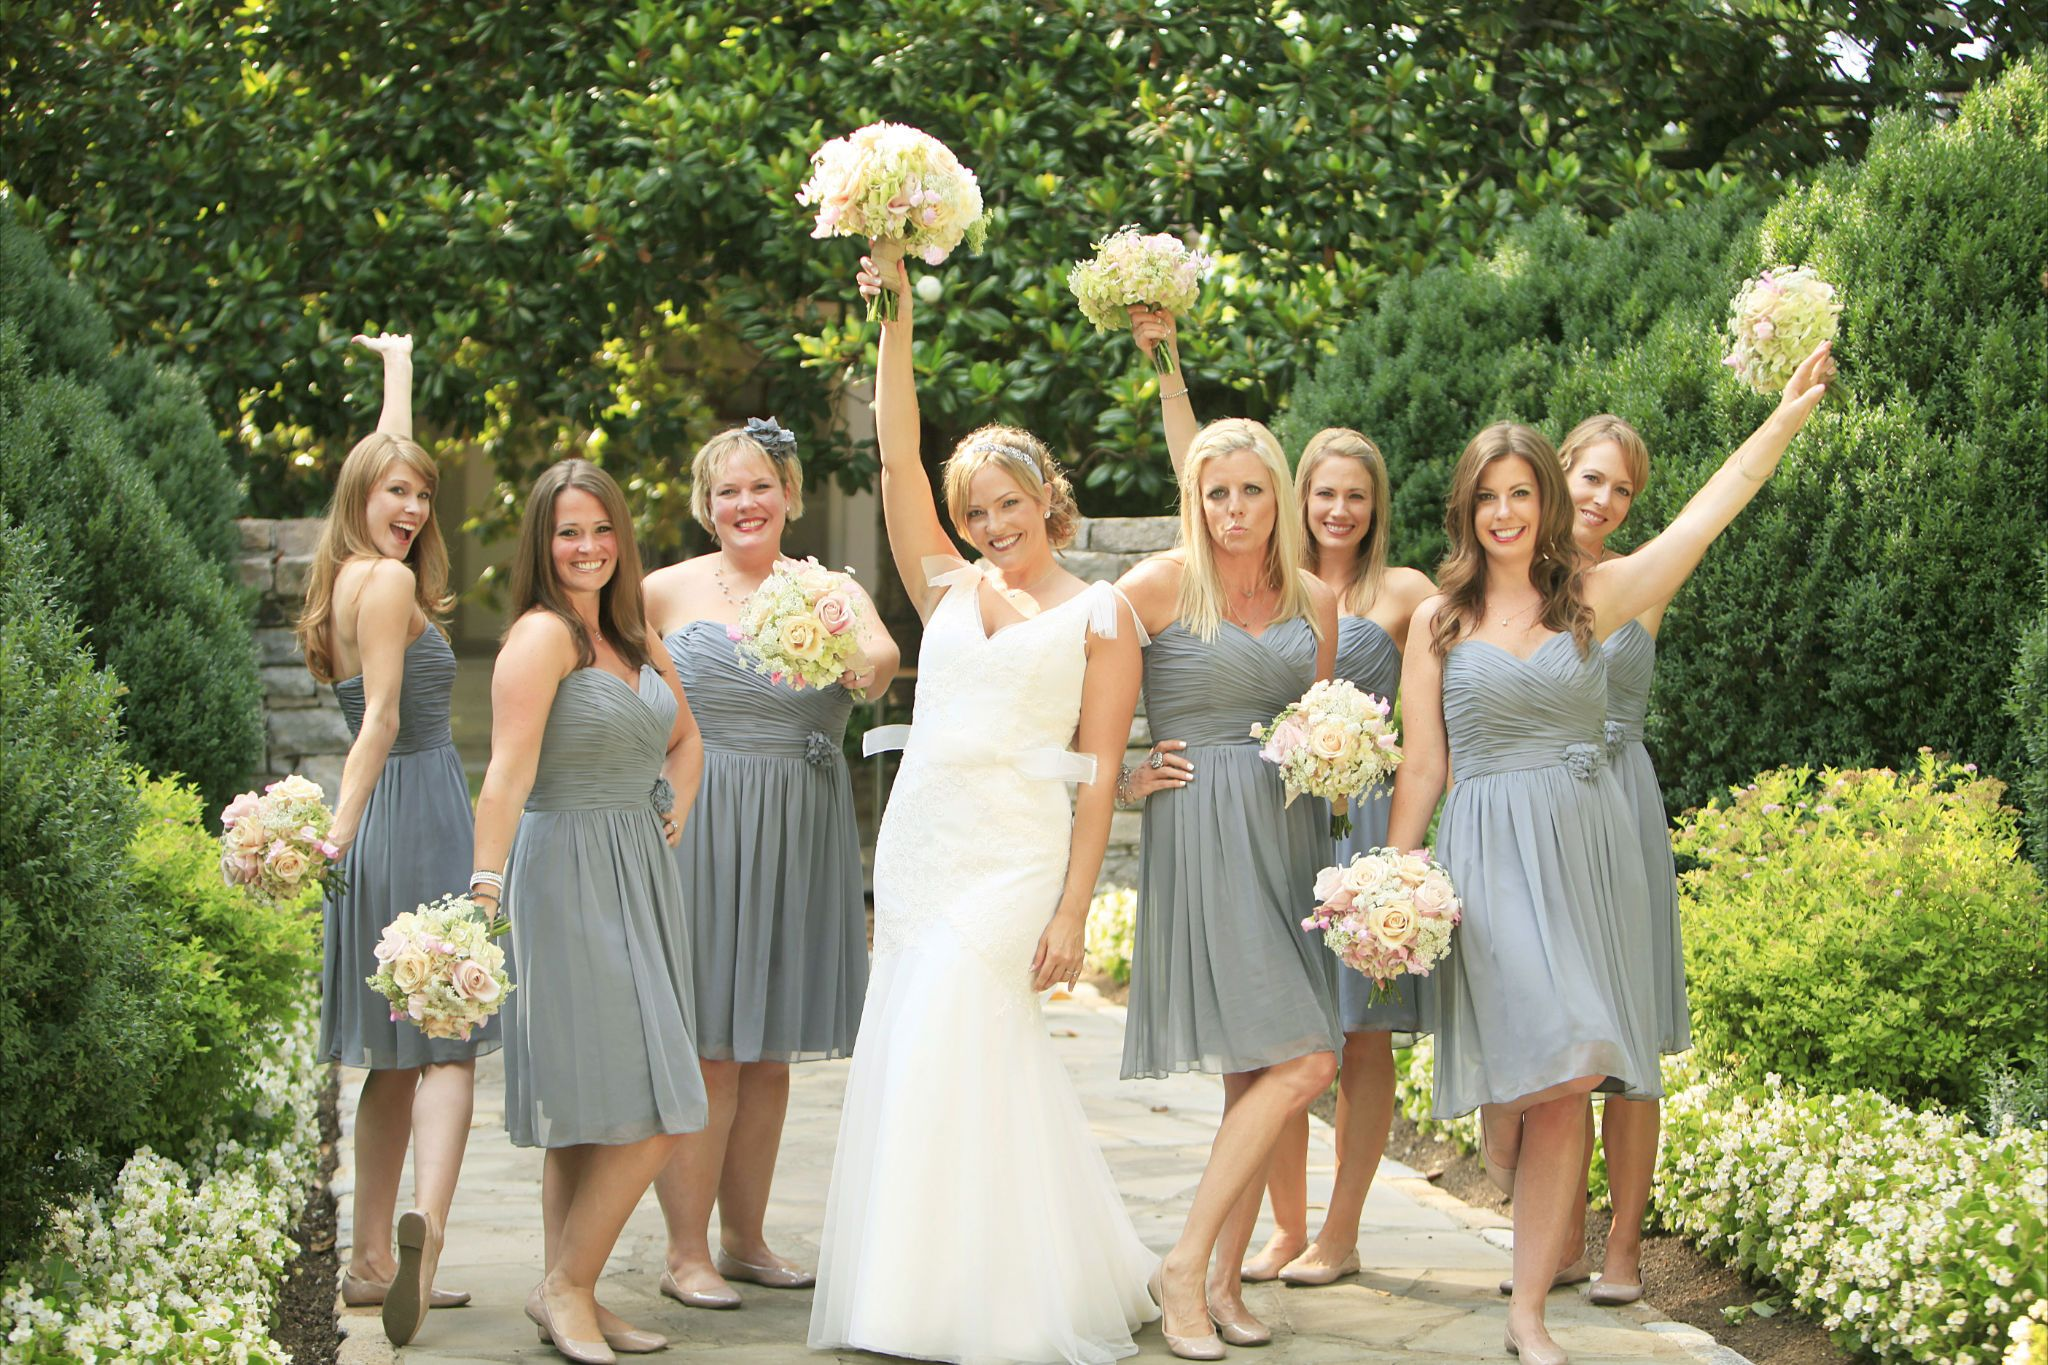 Grey bridesmaid dresses google search bridesmaids and grey bridesmaid dresses google search ombrellifo Choice Image